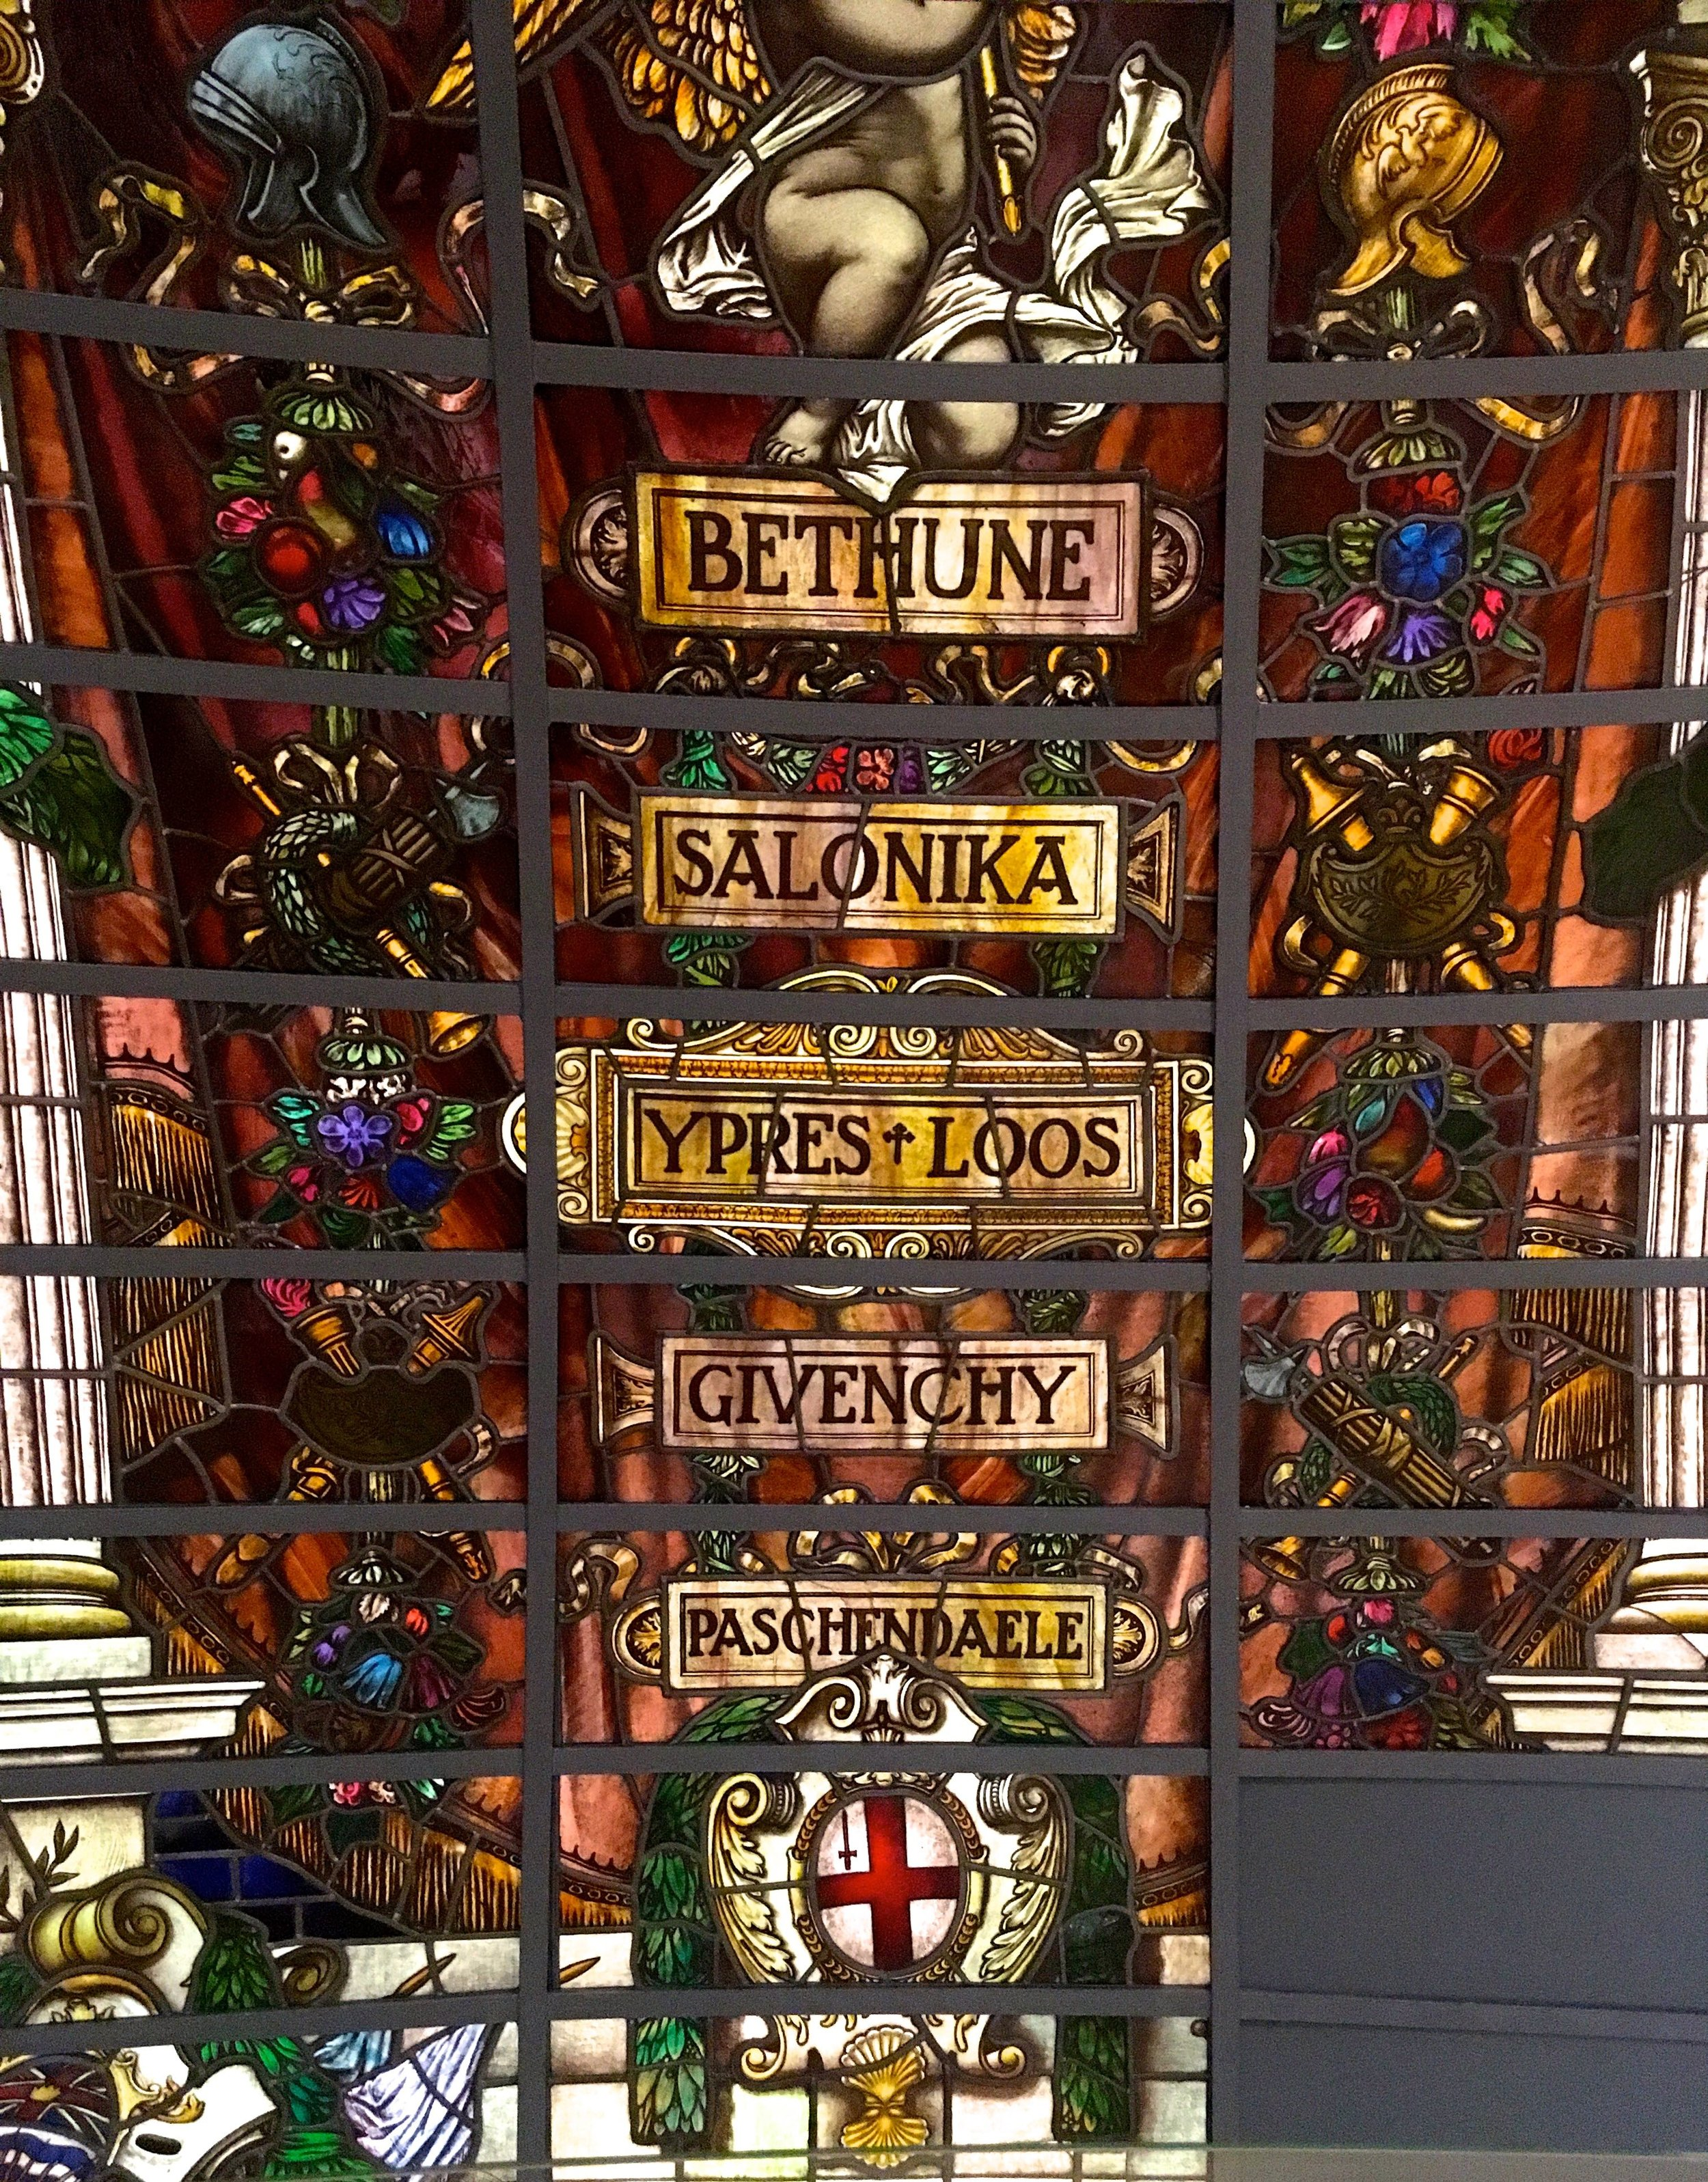 A section of the restored Baltic Exchange stained glass window